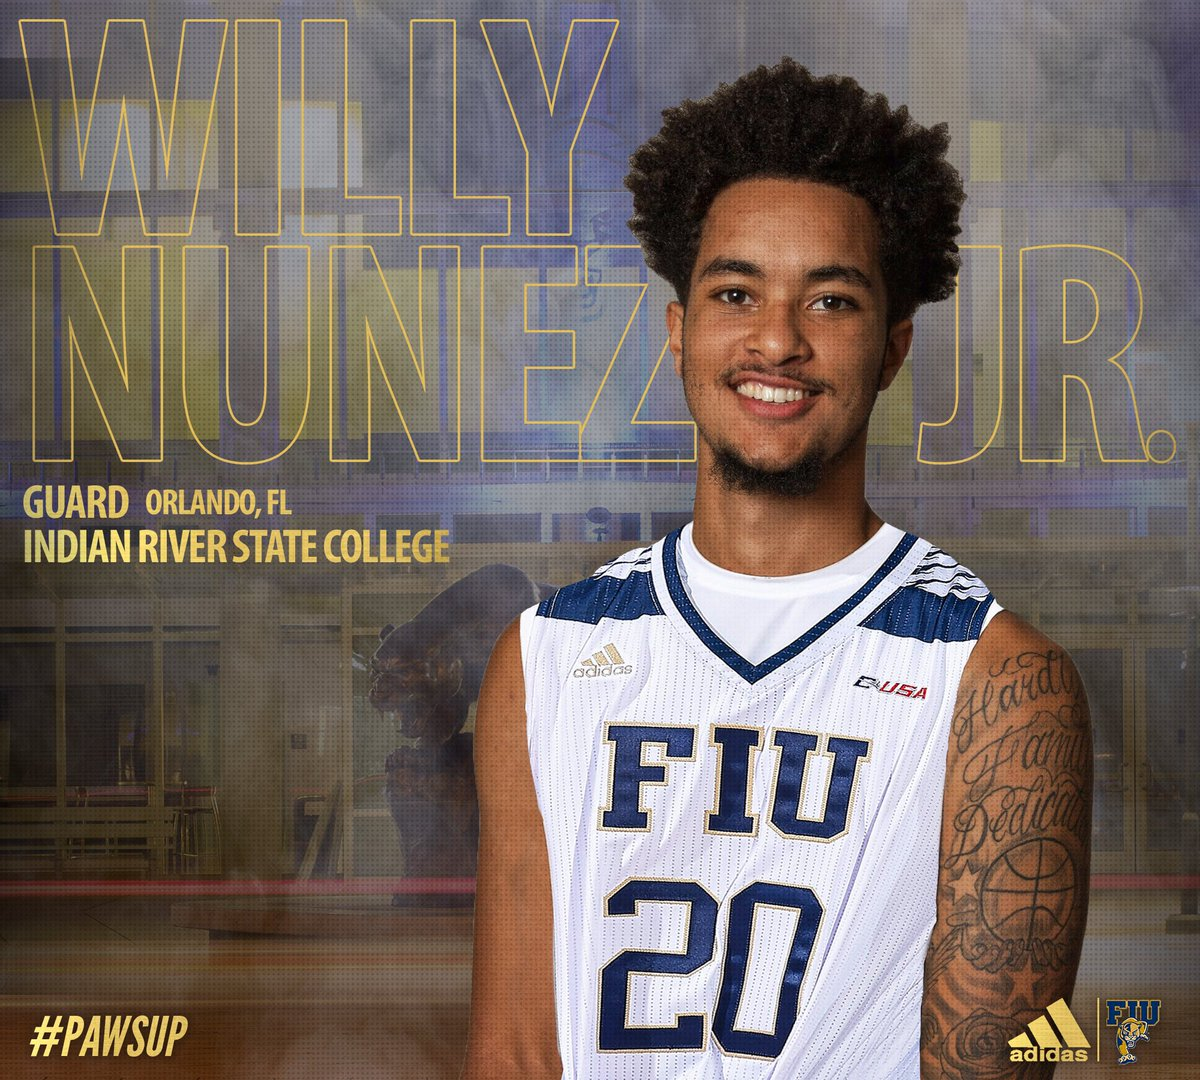 Happy Birthday to our Junior guard Willy Nunez Jr.! --- #FIU #PawsUp #HappyBirthday <br>http://pic.twitter.com/6oF6DQE2n6